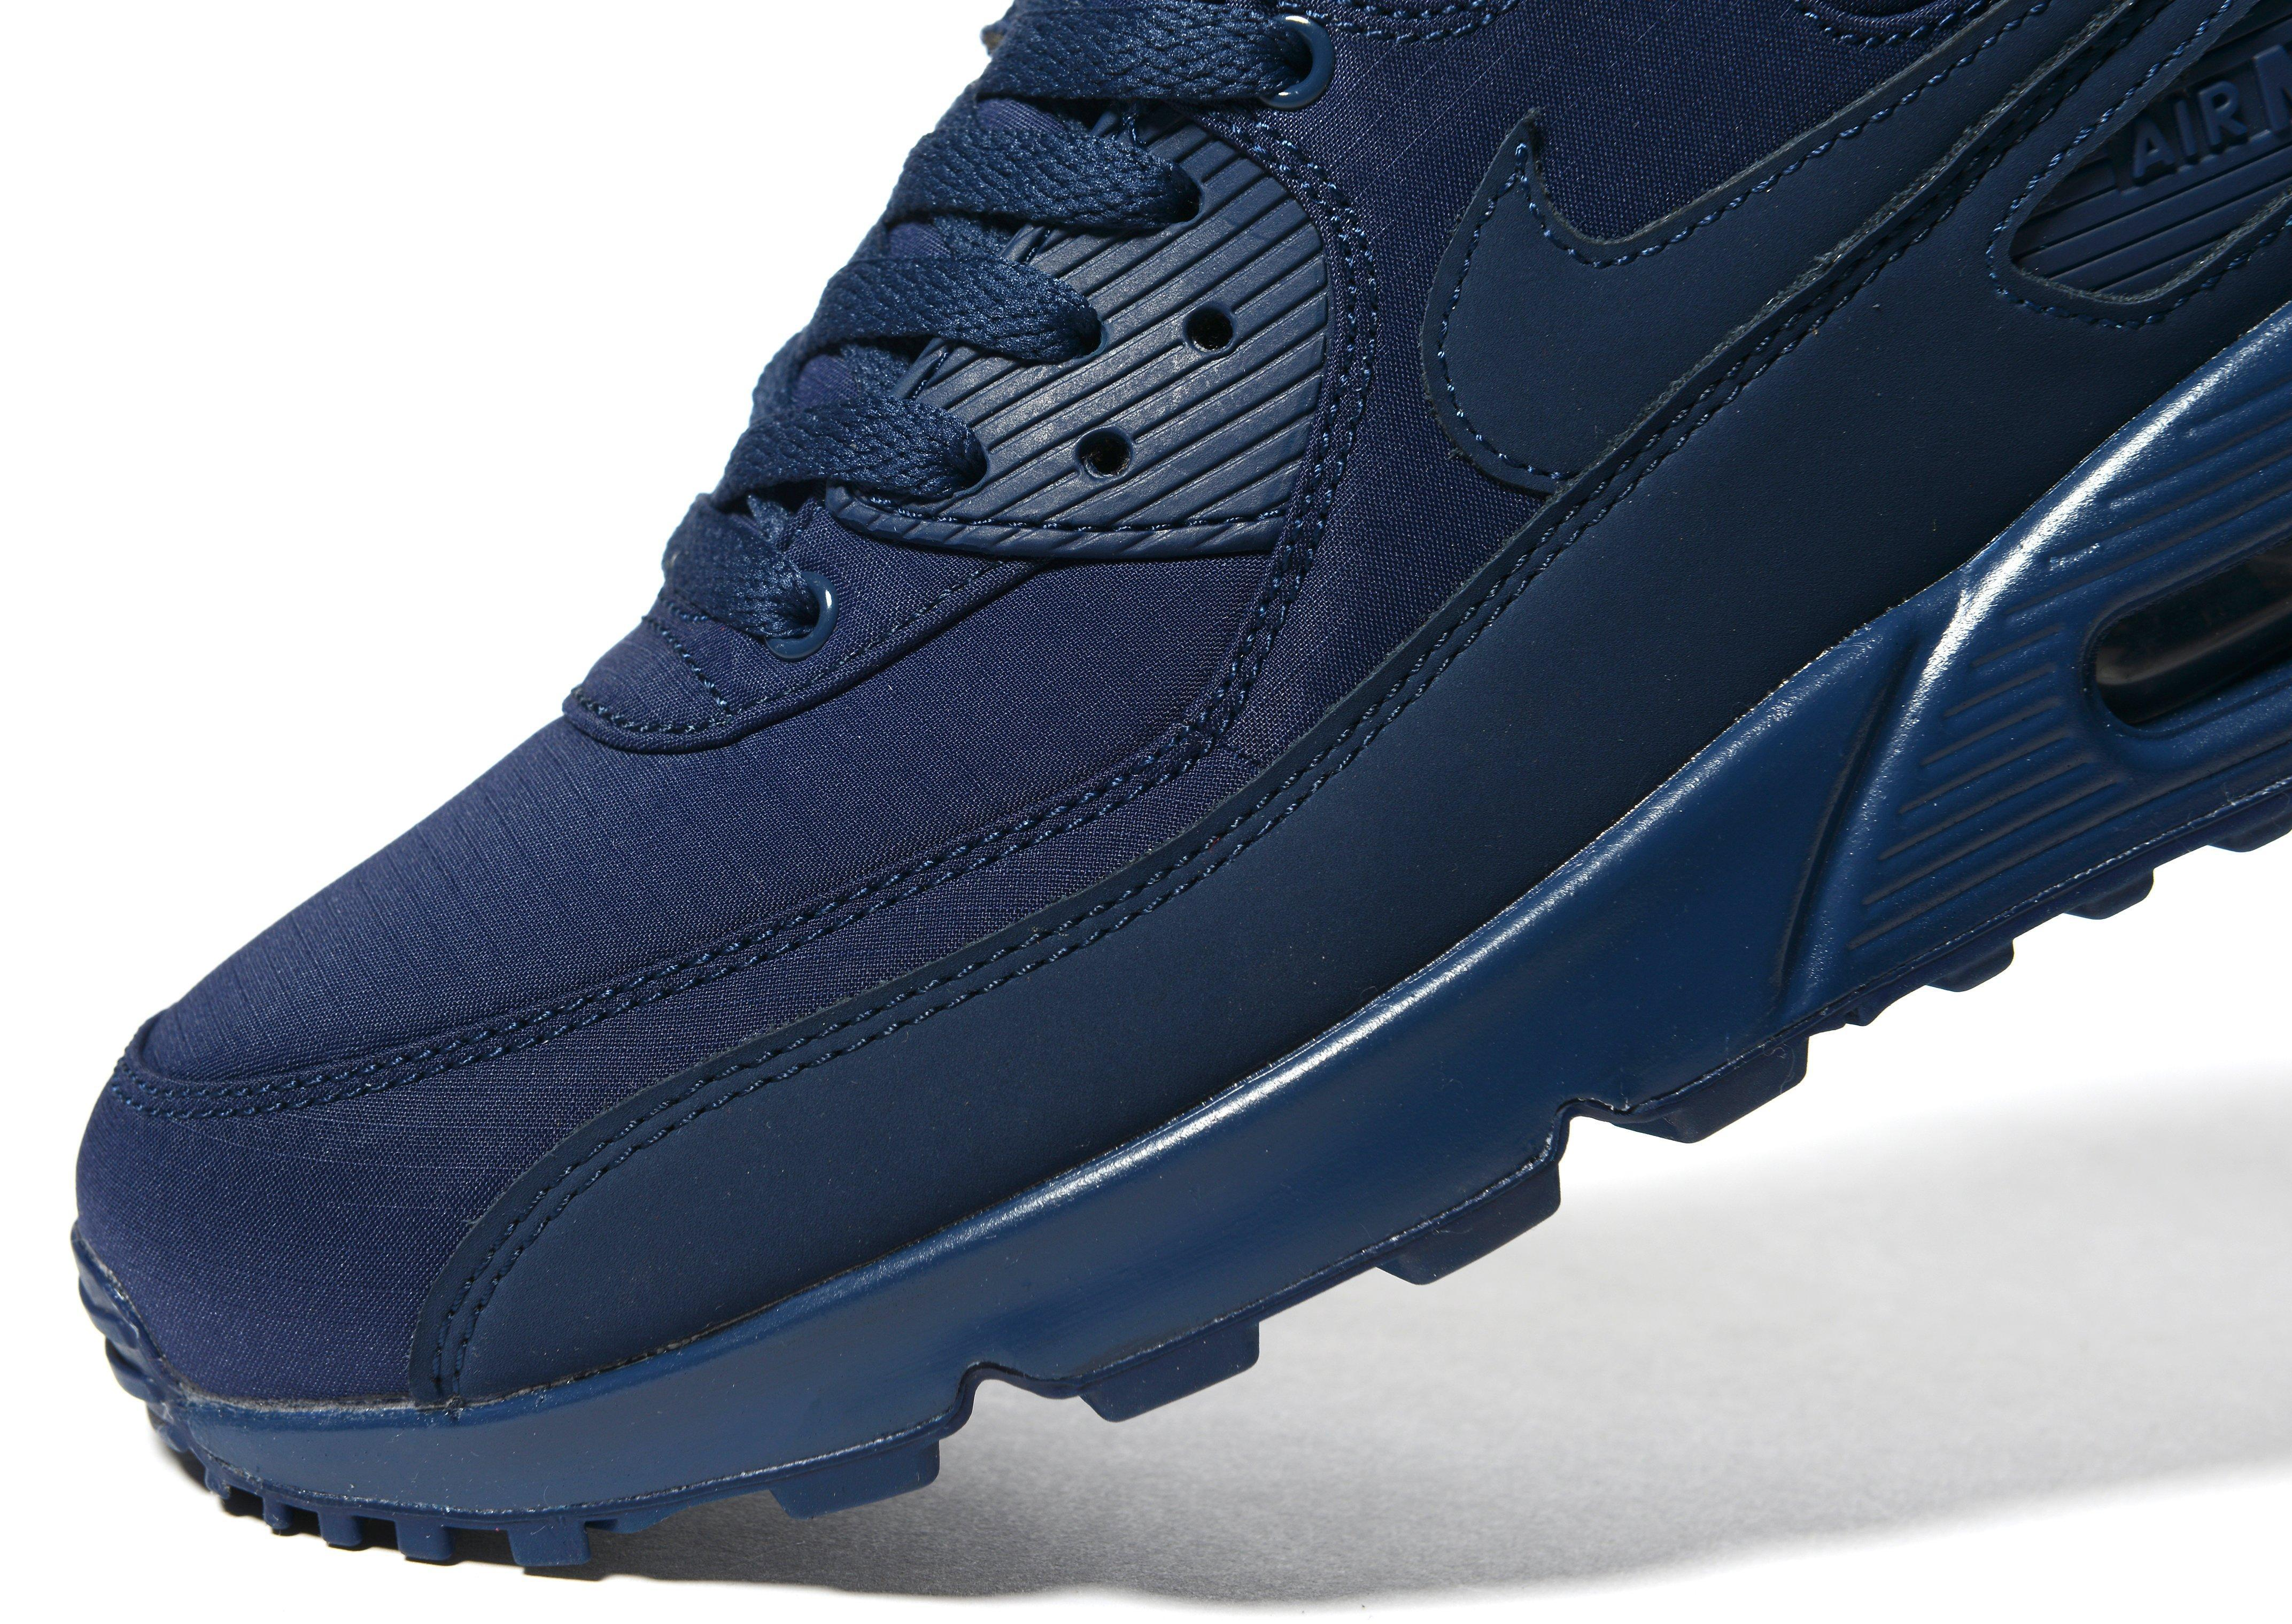 Nike Leather Air Max 90 Ripstop in Navy (Blue) for Men - Lyst